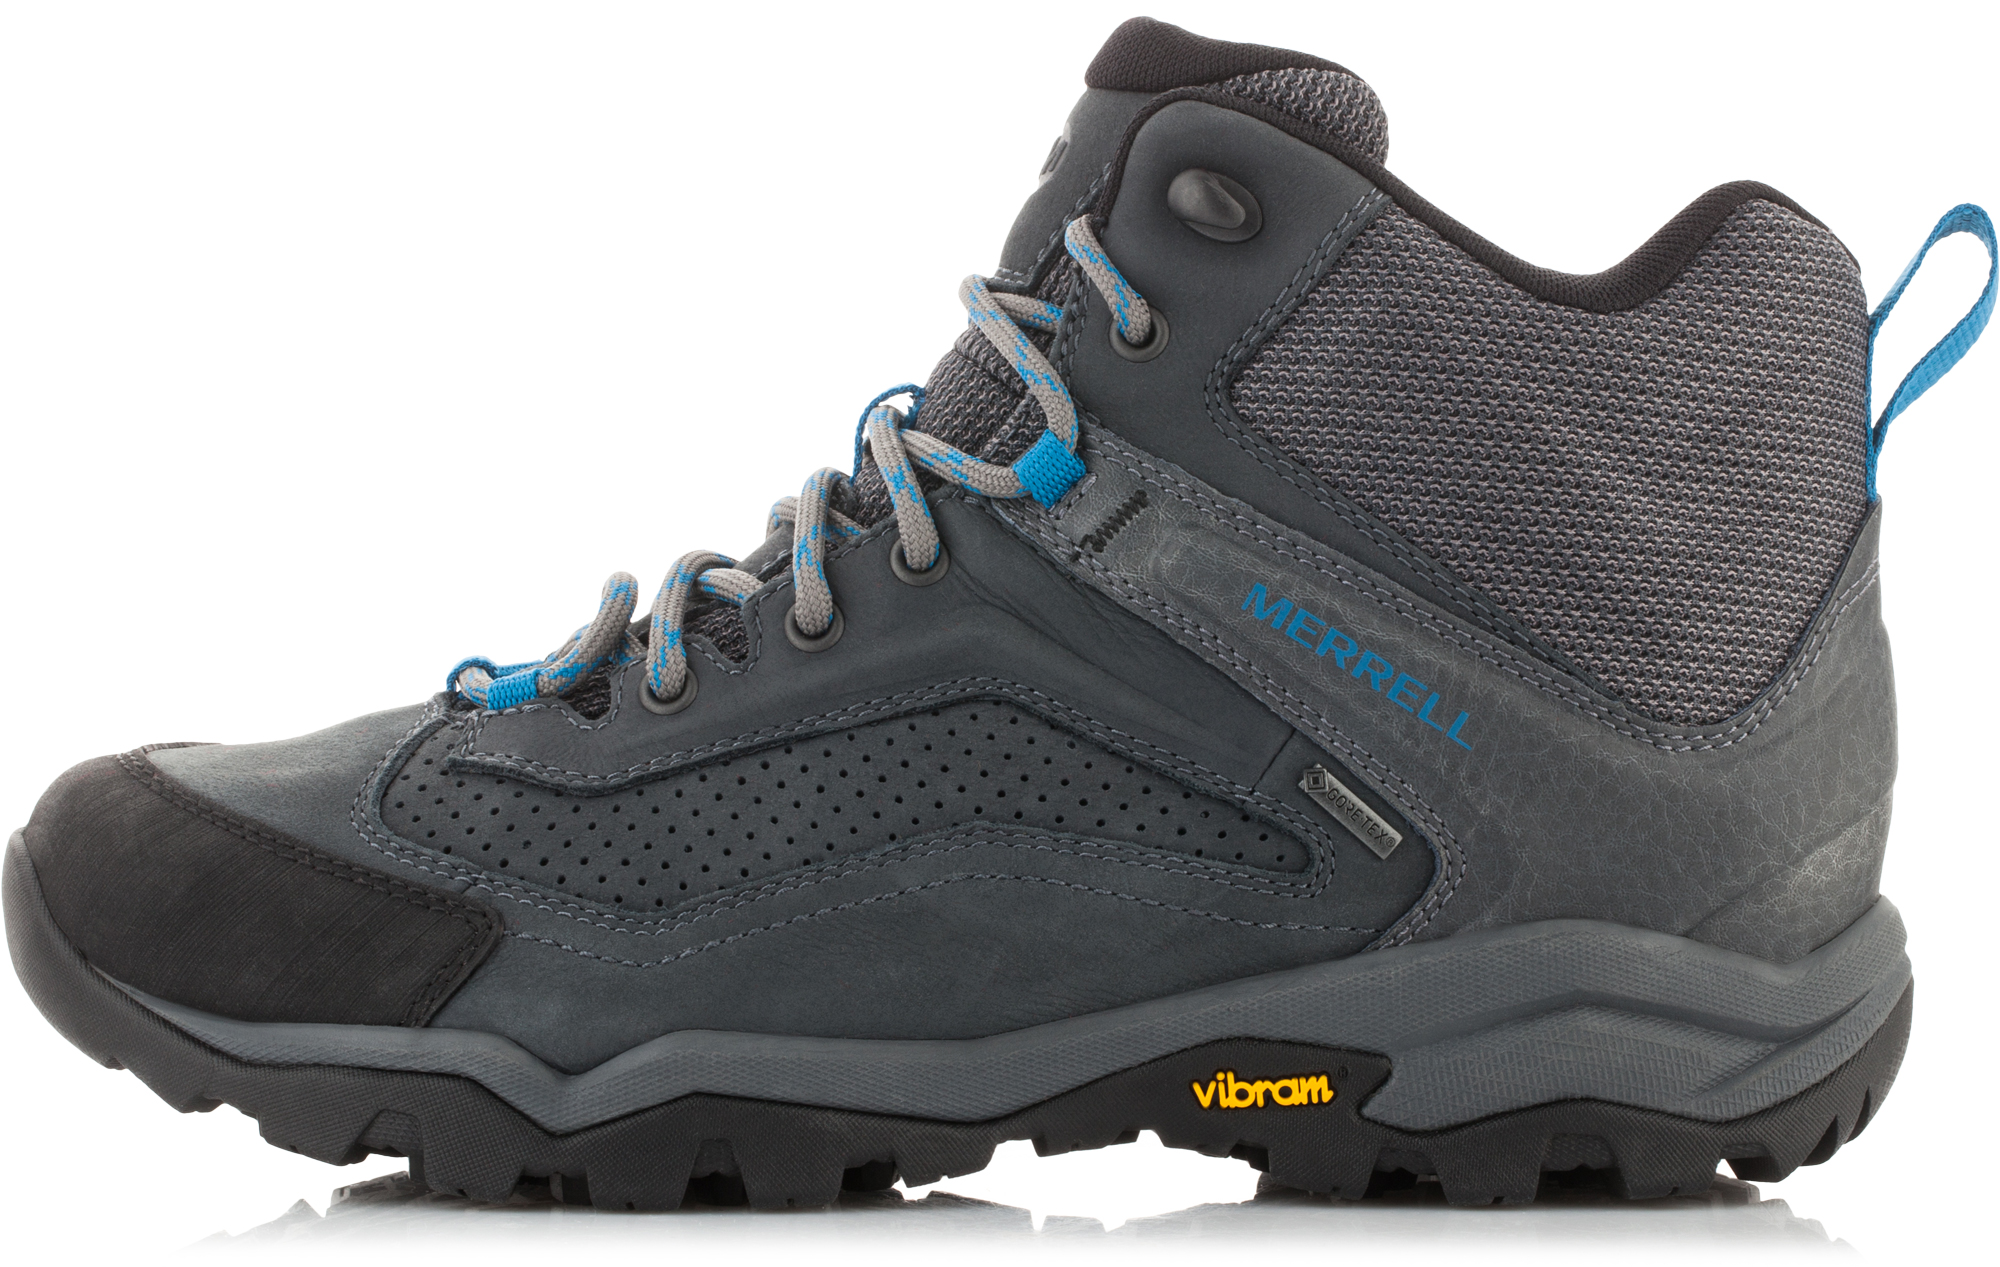 Merrell Ботинки мужские Merrell Everbound Mid